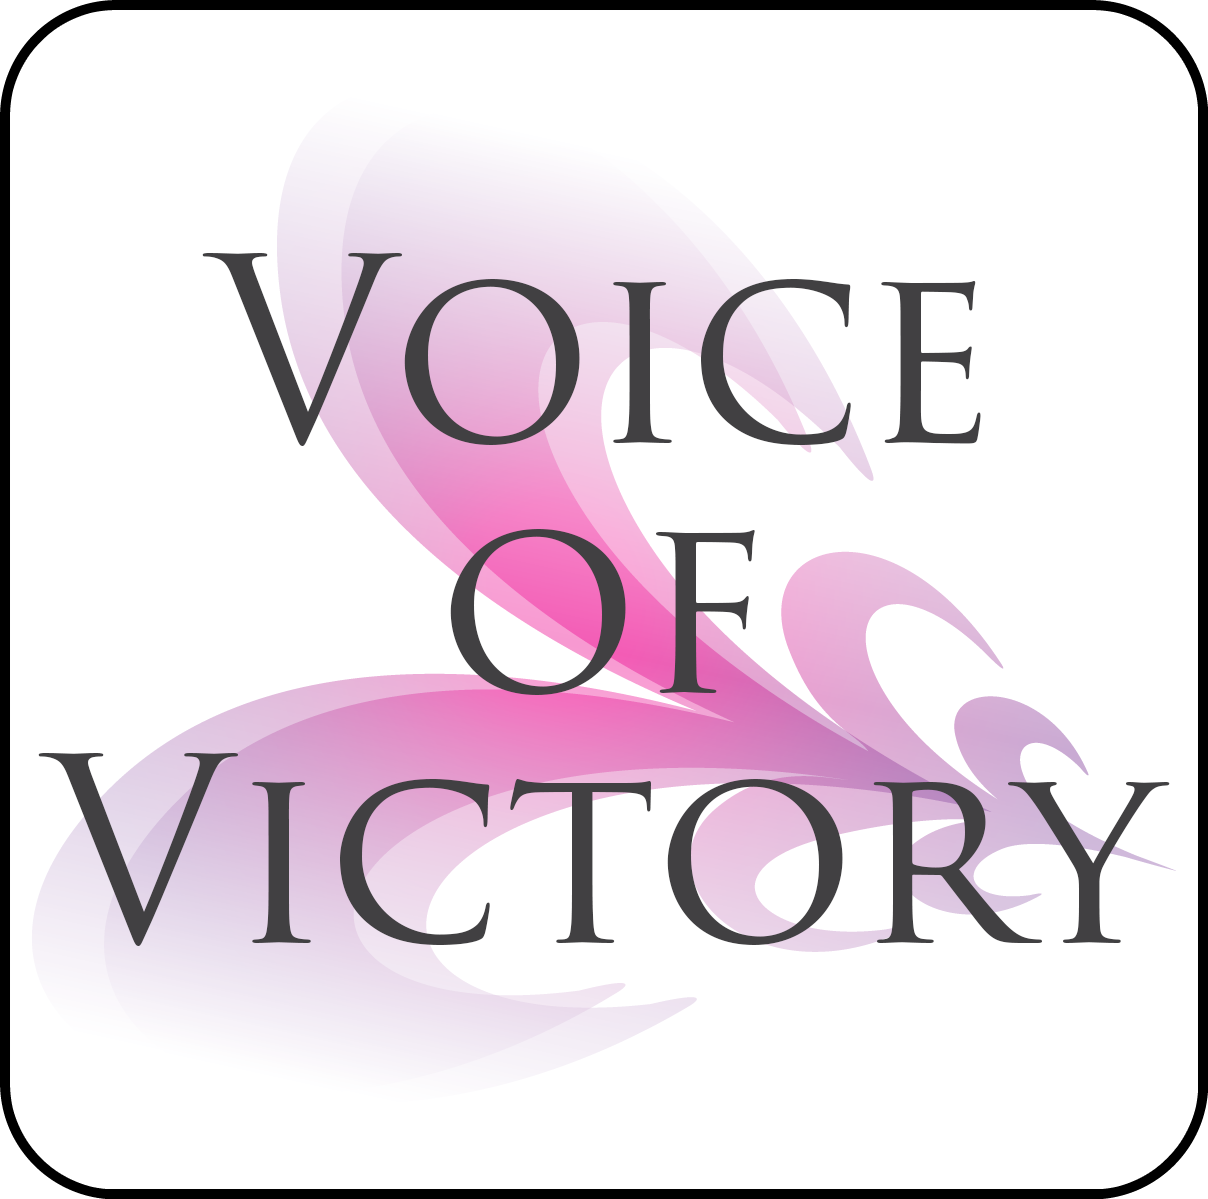 Voice of Victory Newsletter Link for SPA Women's Ministry